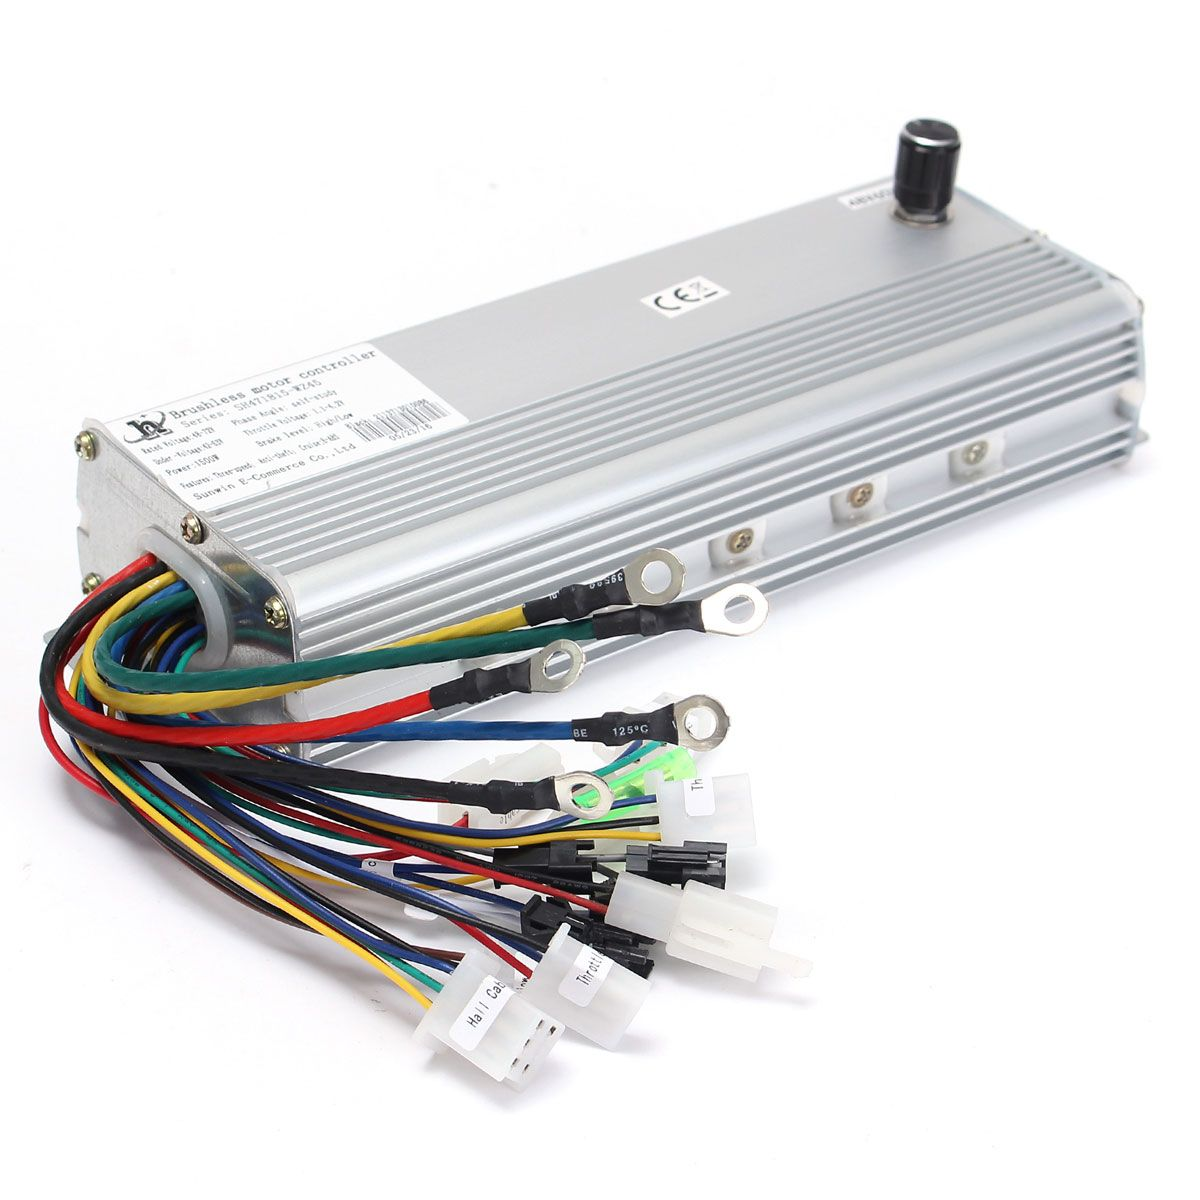 1500w 48v 72v electric scooter brushless motor controller for e bike scooter [ 1200 x 1200 Pixel ]